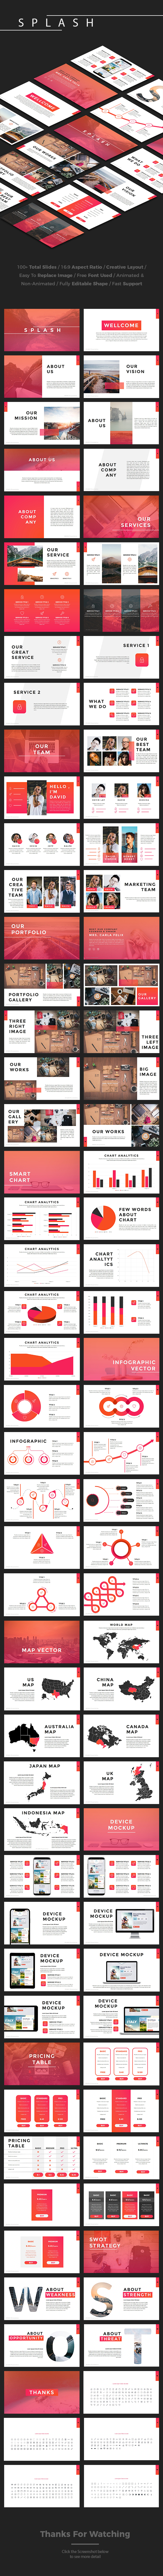 Splash - Multipurpose PowerPoint Template - PowerPoint Templates Presentation Templates